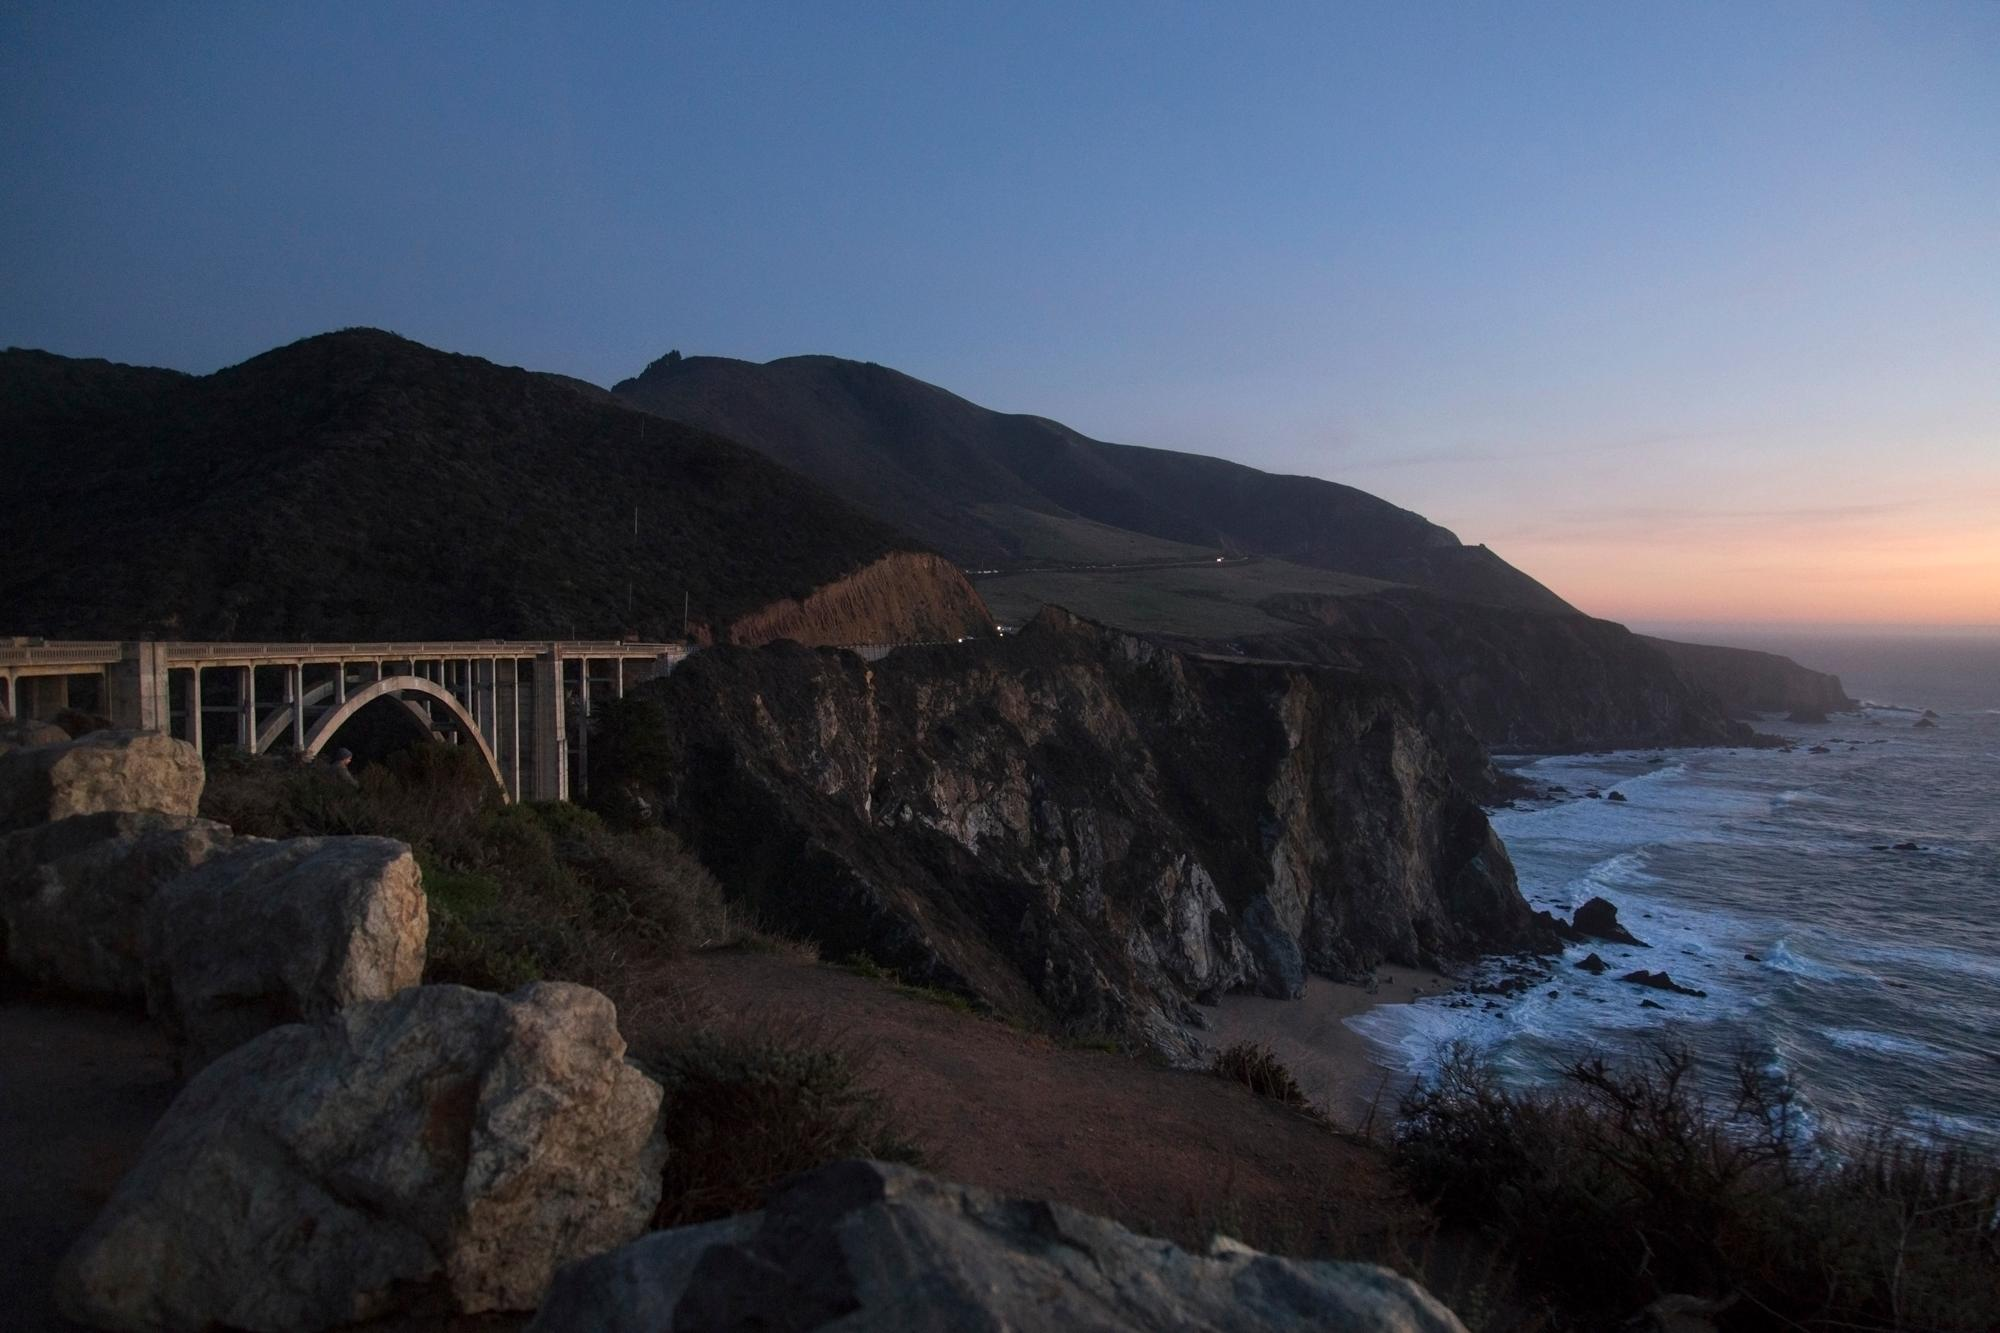 Big Sur at sunset on the first day of riding. (Rugile Kaladyte)